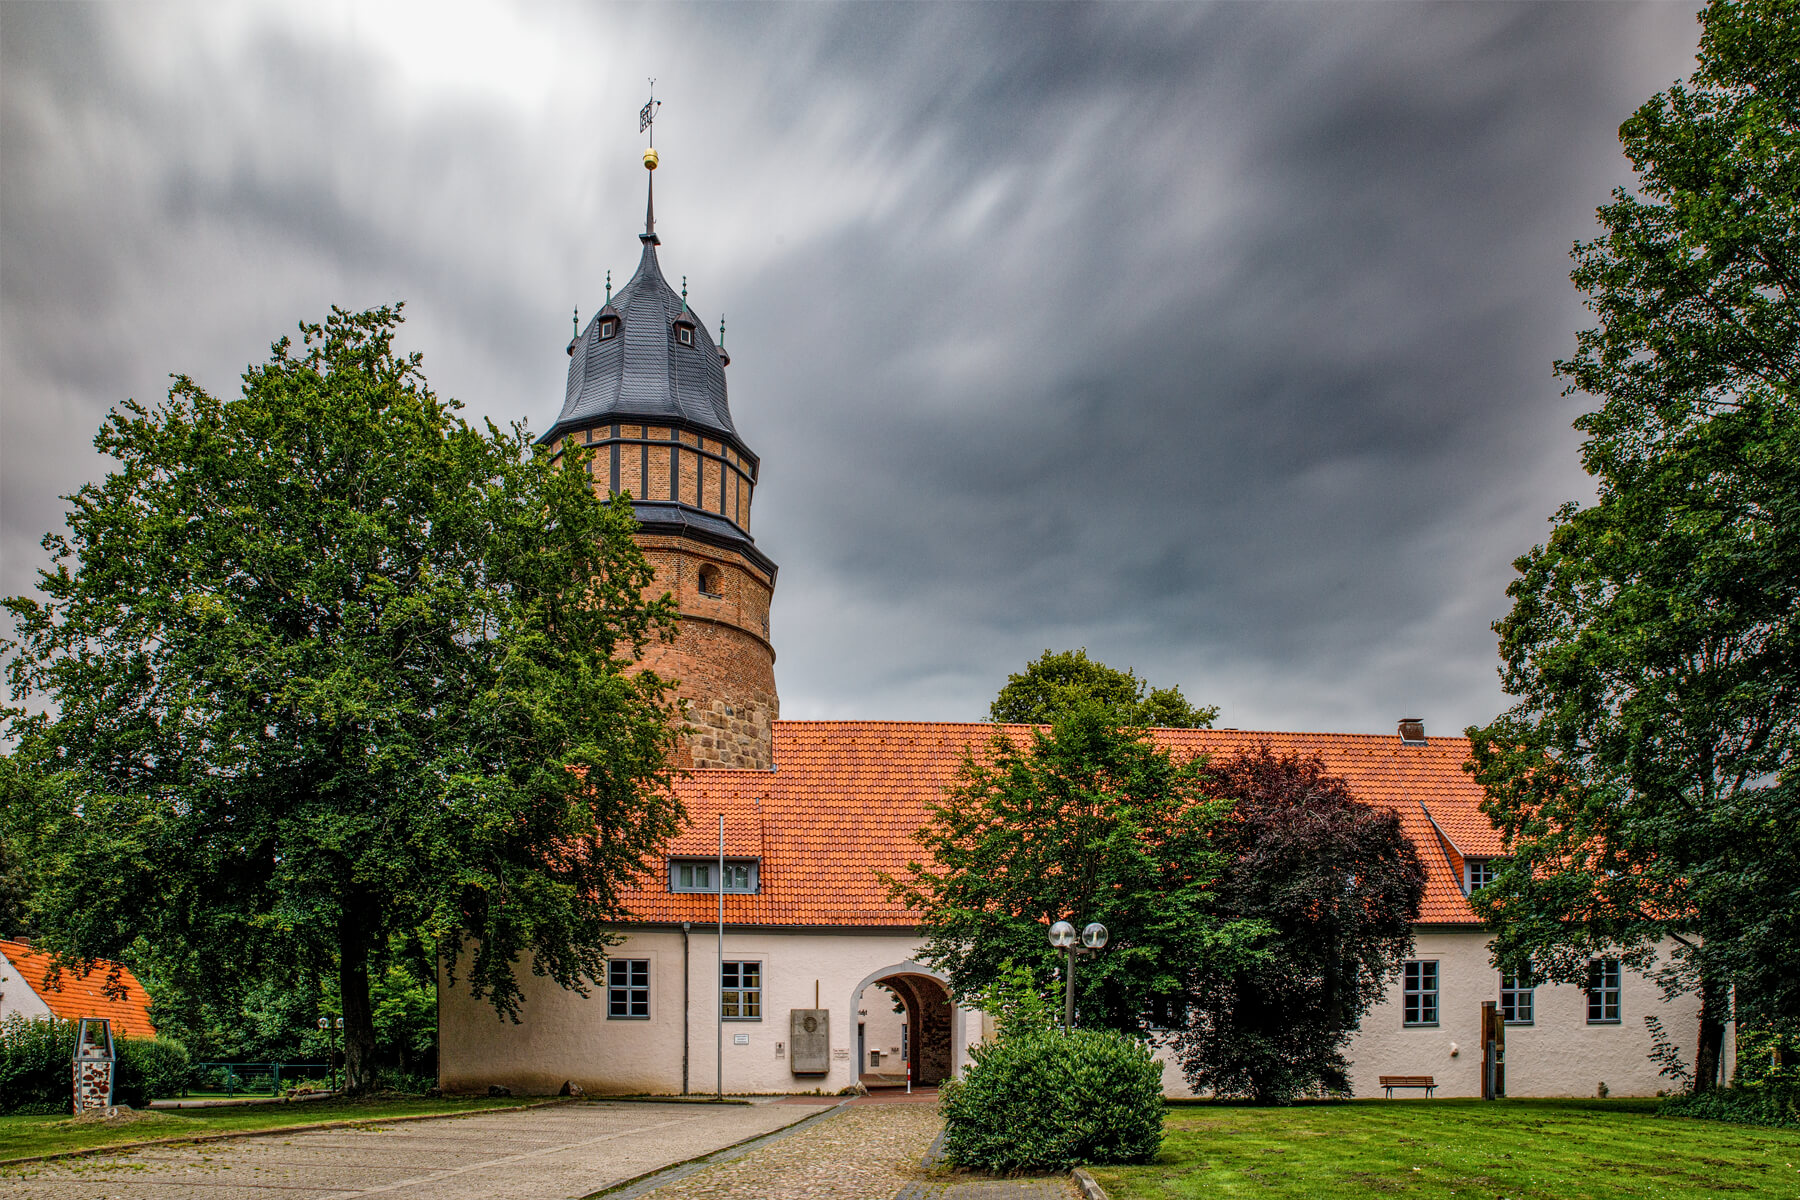 Diepholz Castle, Germany